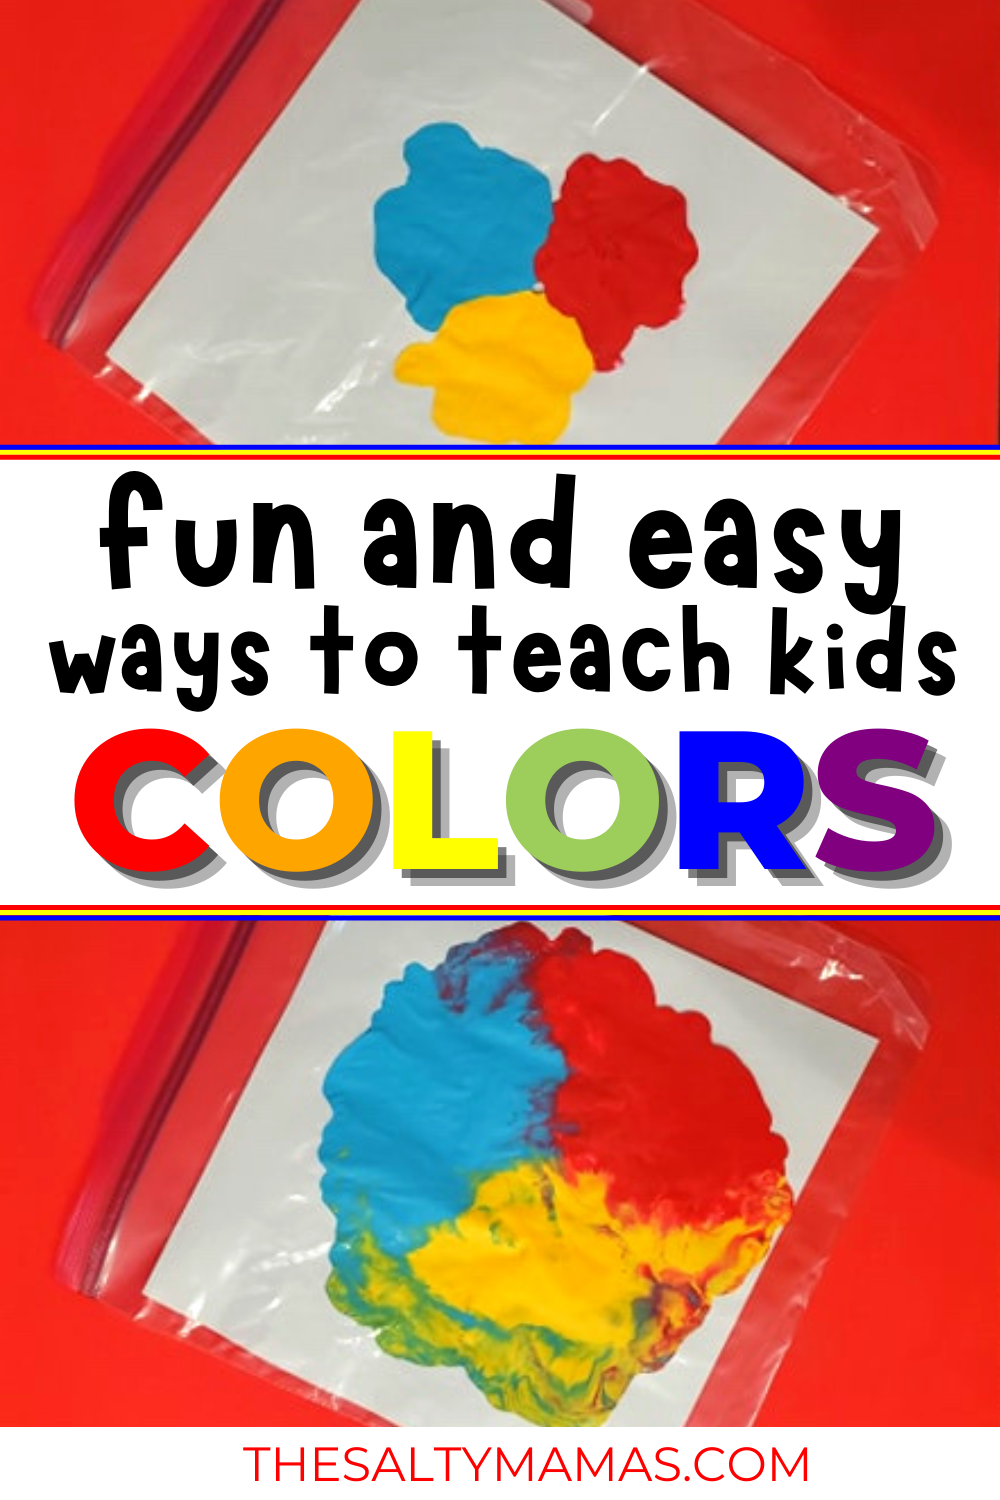 color mixing paint; text overlay: Fun and easy ways to teach kids colors.